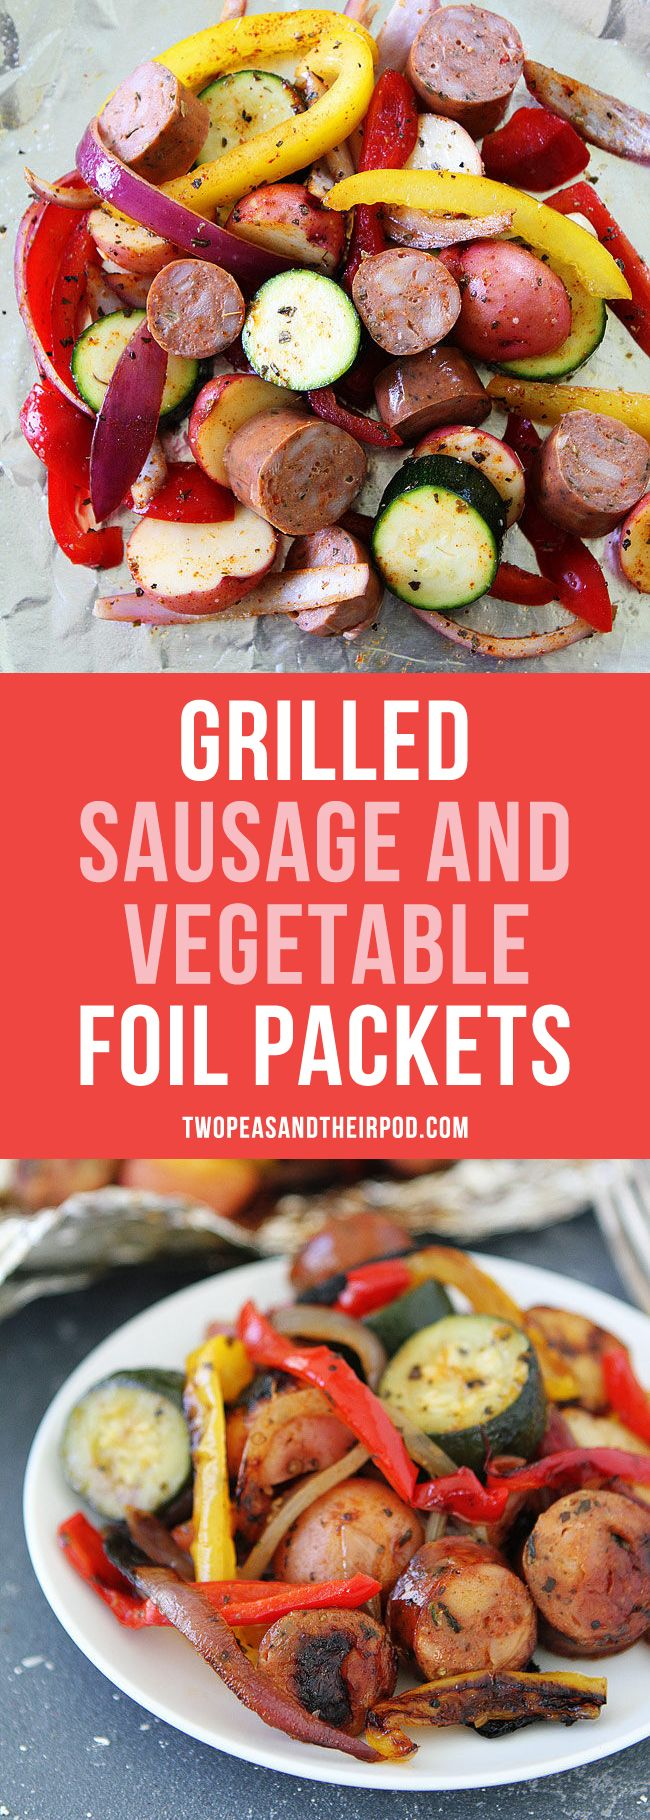 Grilled Sausage and Vegetable Foil Packets make a great summer dinner. They are easy to make and the clean up is a breeze. Tin foil dinners are a summer favorite!